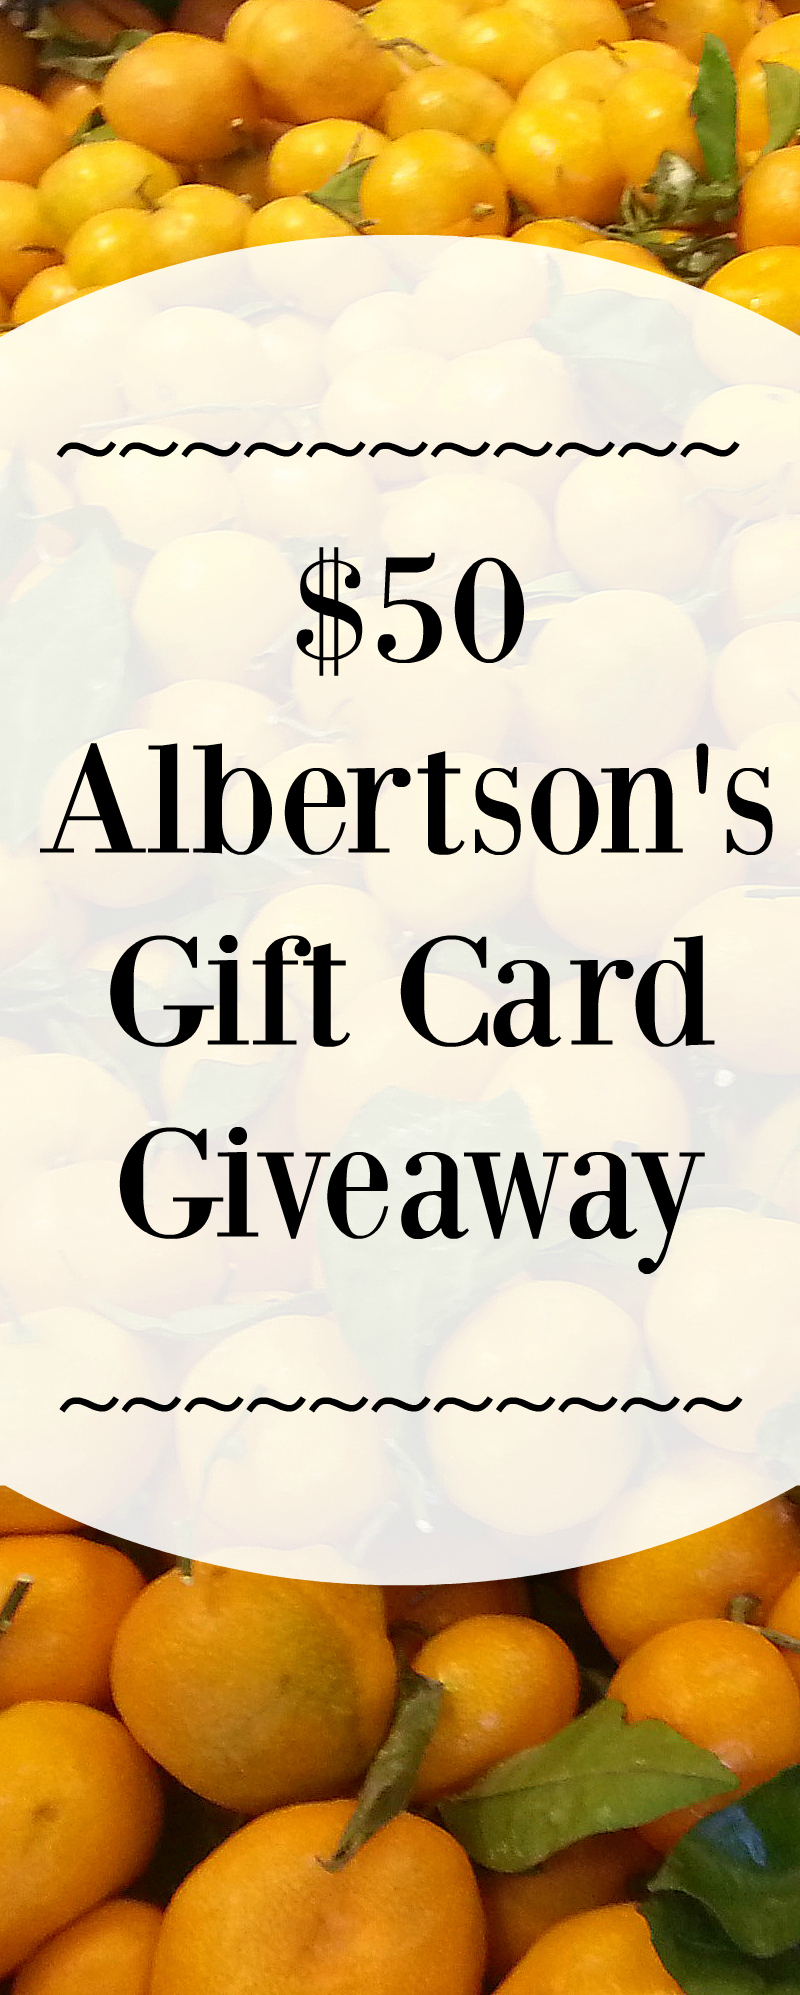 Albertson's Gift Card Giveaway